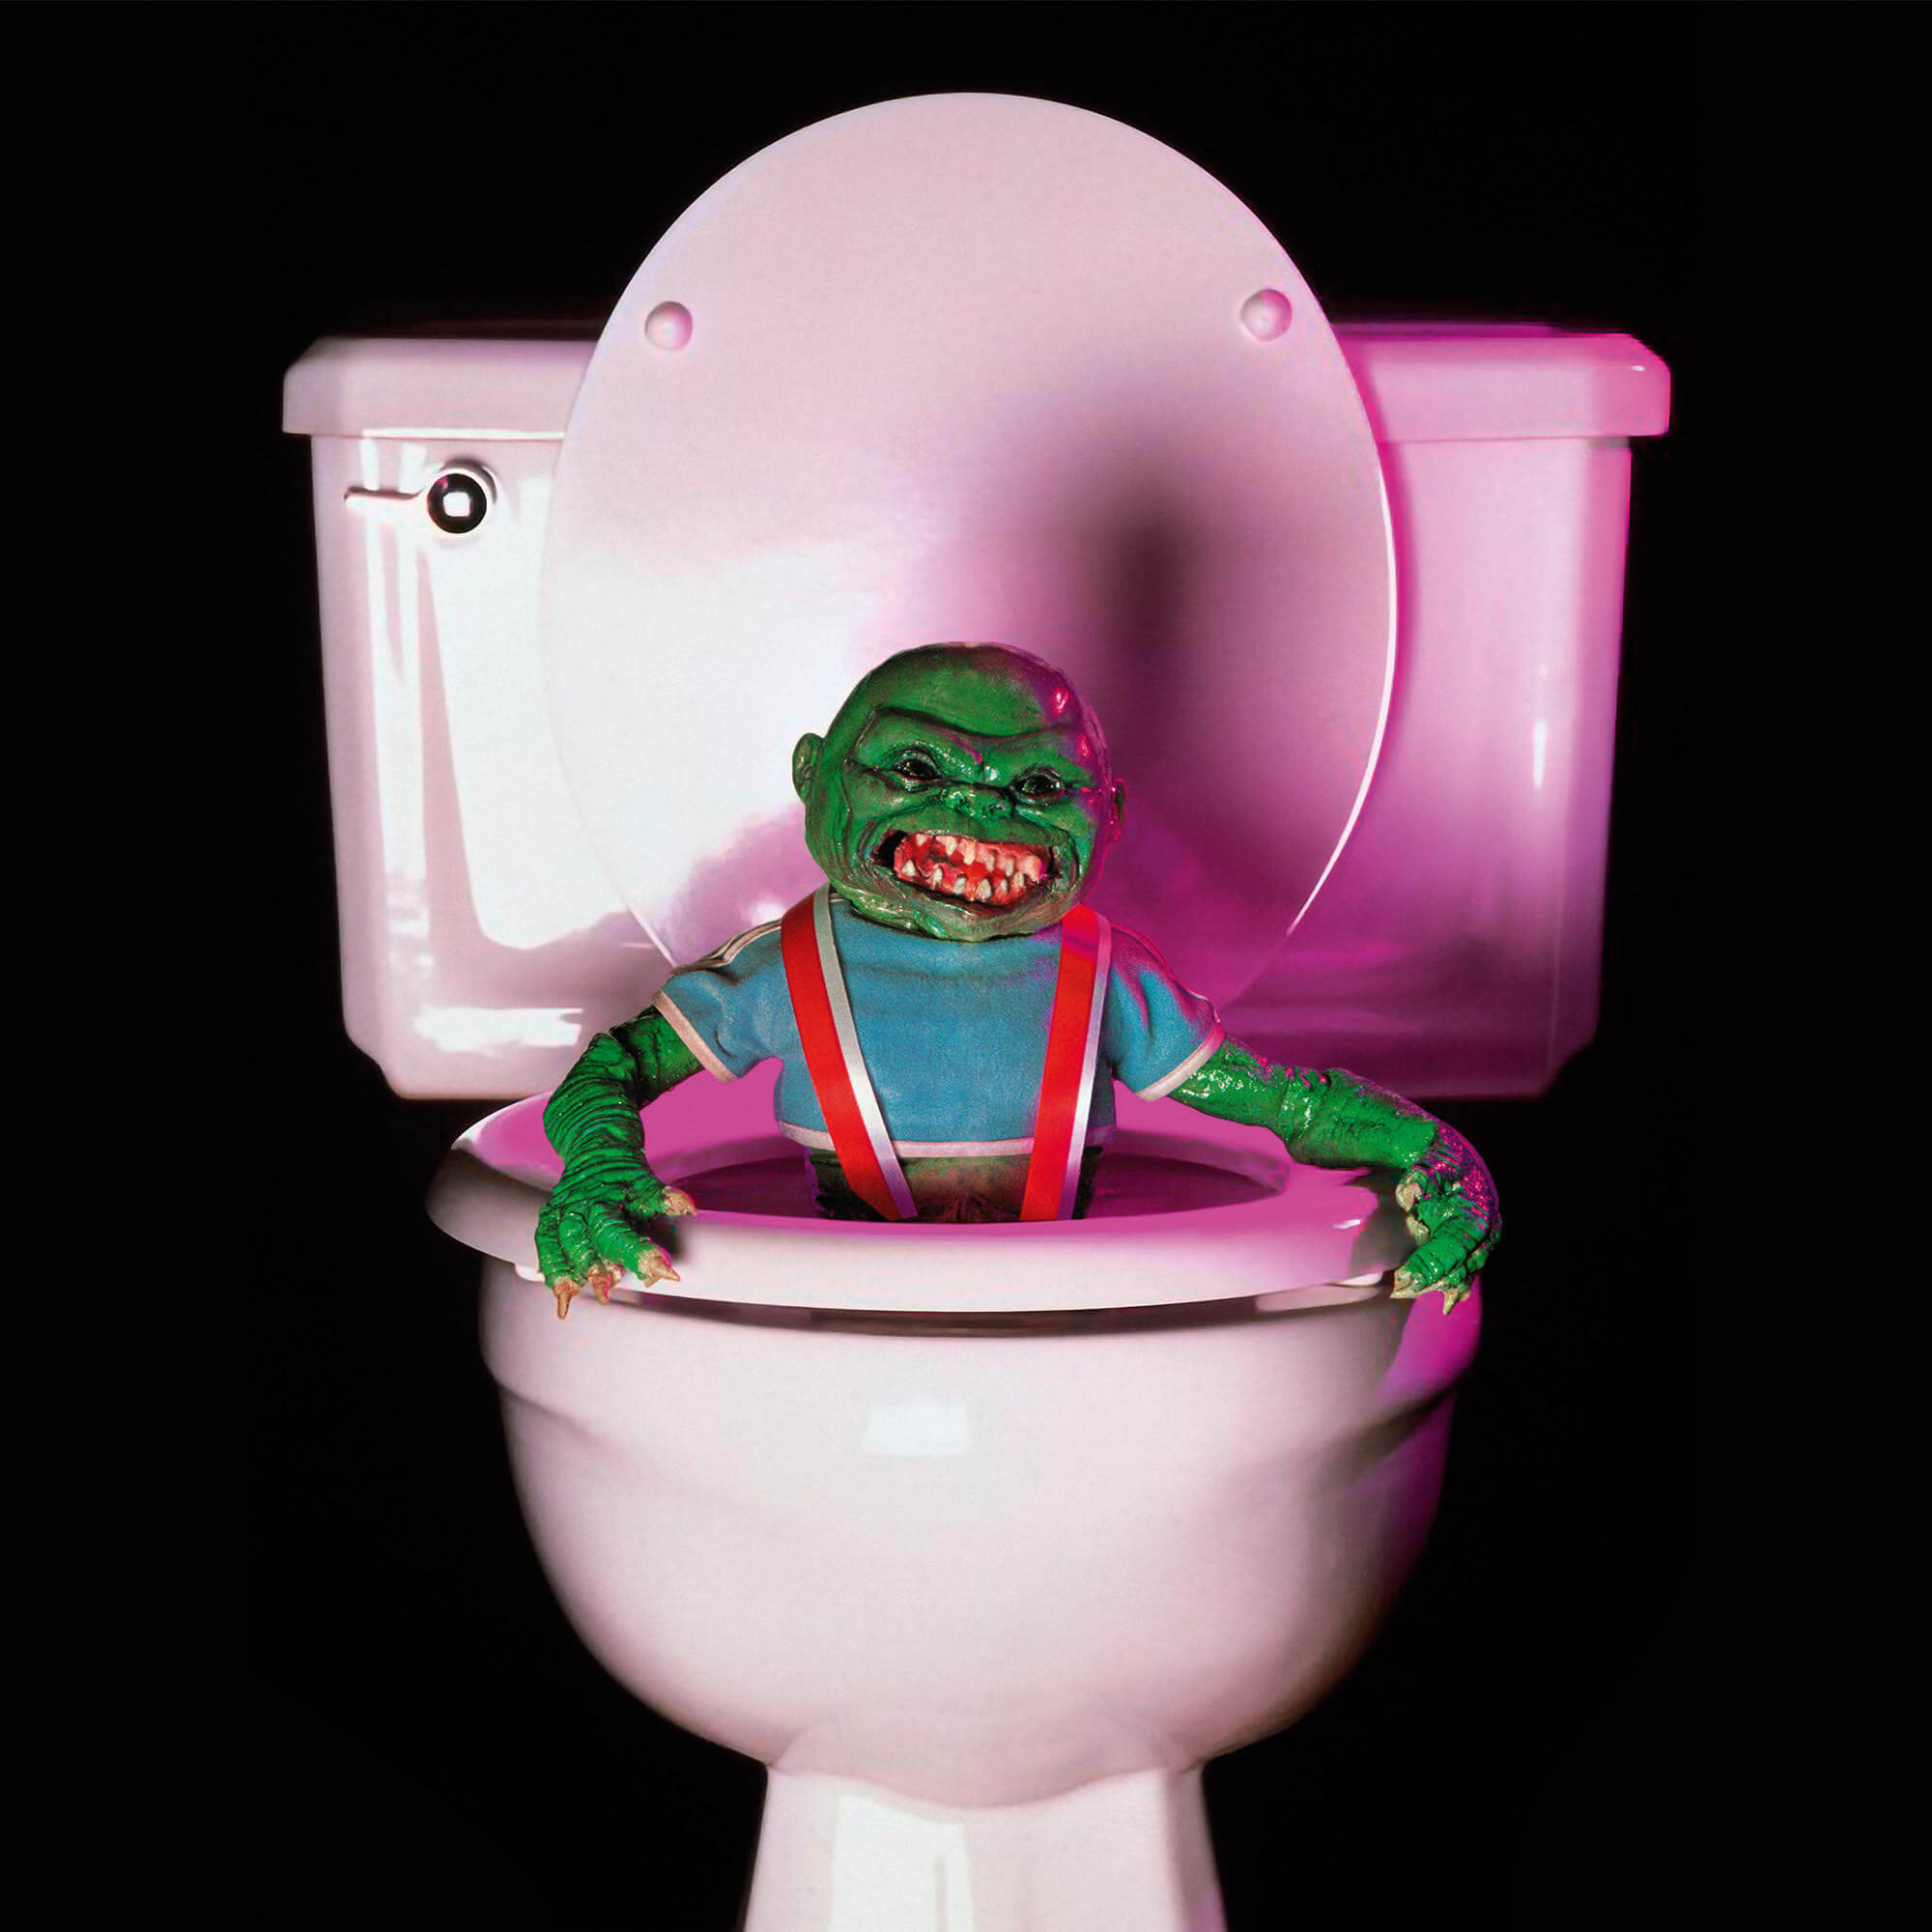 ghoulies win